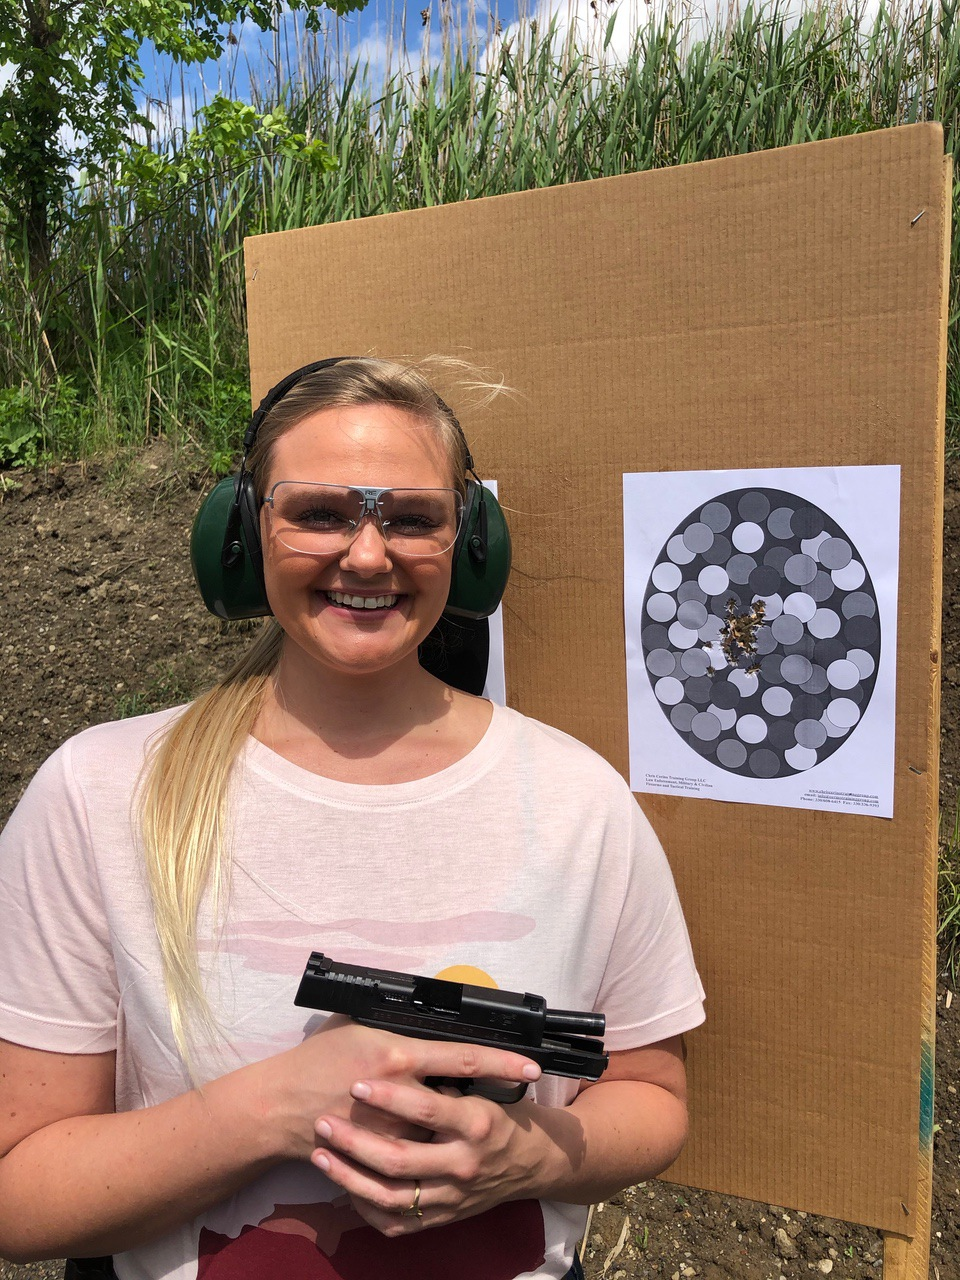 Tips for Bringing a New Gun Owner to the Range